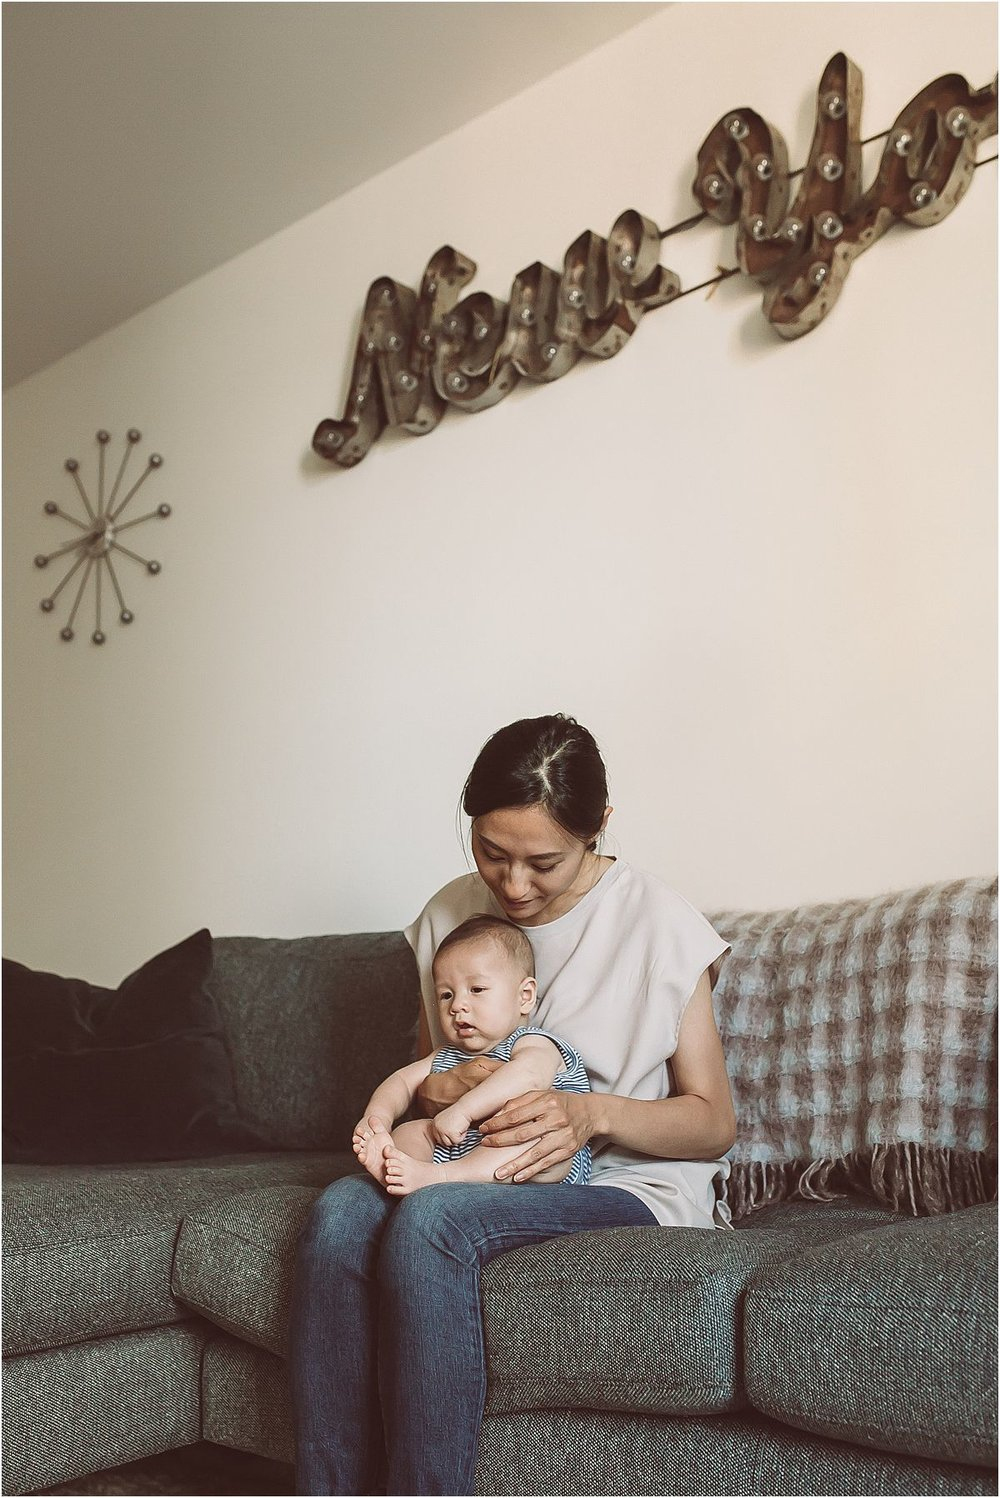 mom and son sitting happily together on couch in their downtown manhattan abode. image by nyc family and newborn photographer krystil mcdowall